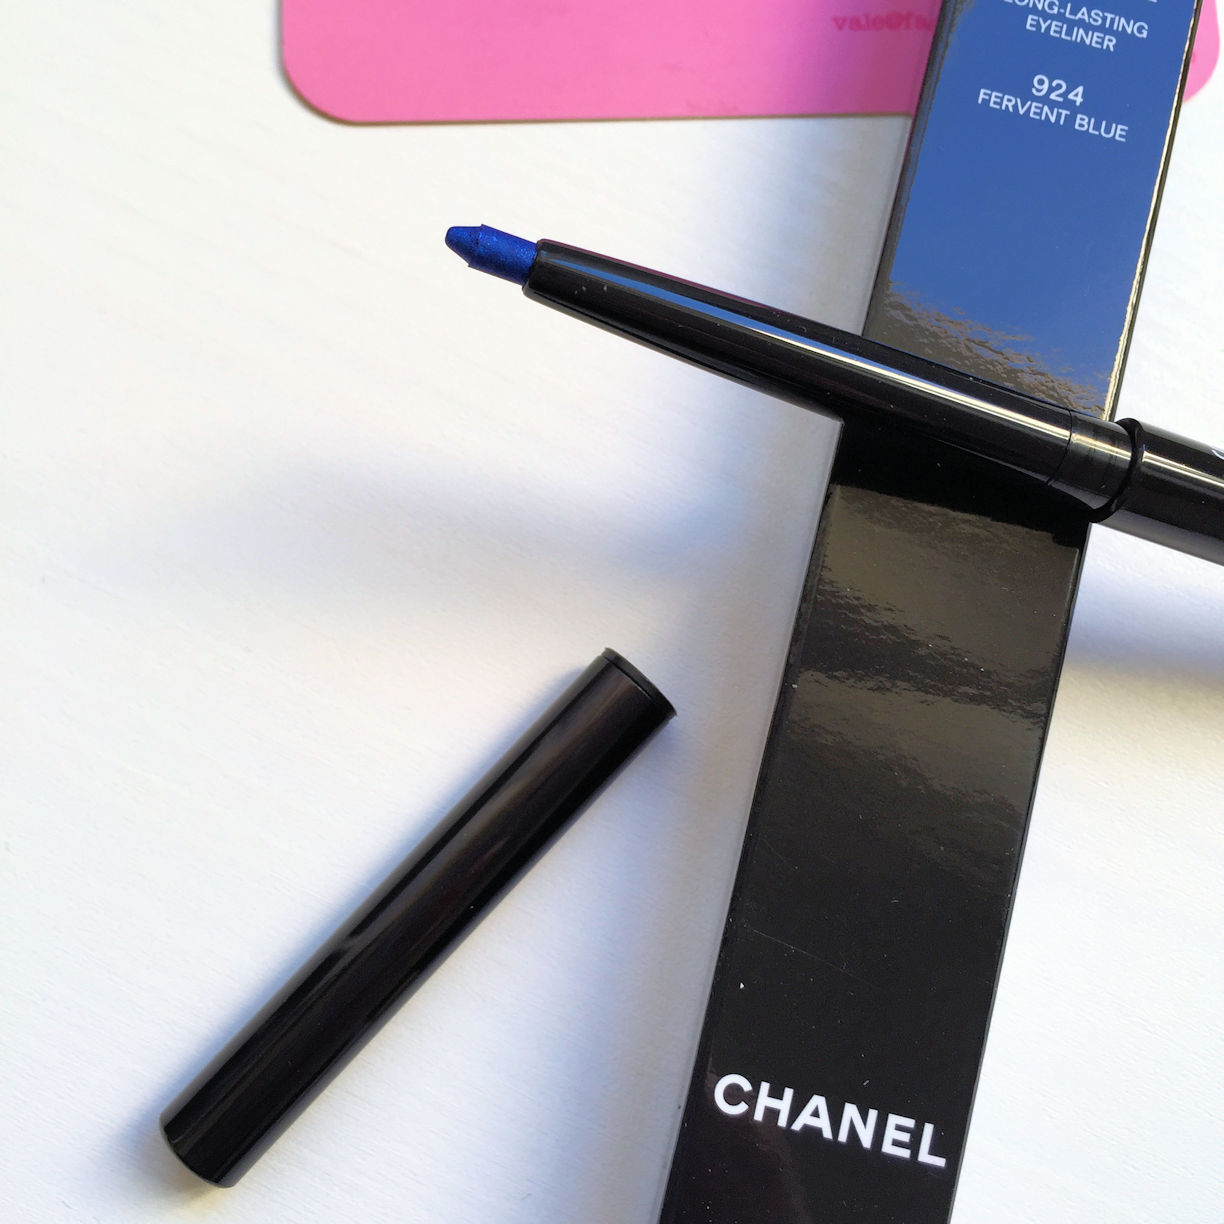 Chanel Stylo Yeux Waterproof in fervent blue from Chanel LA Sunrise collection on Fashion and Cookies fashion and beauty blog, beauty blogger